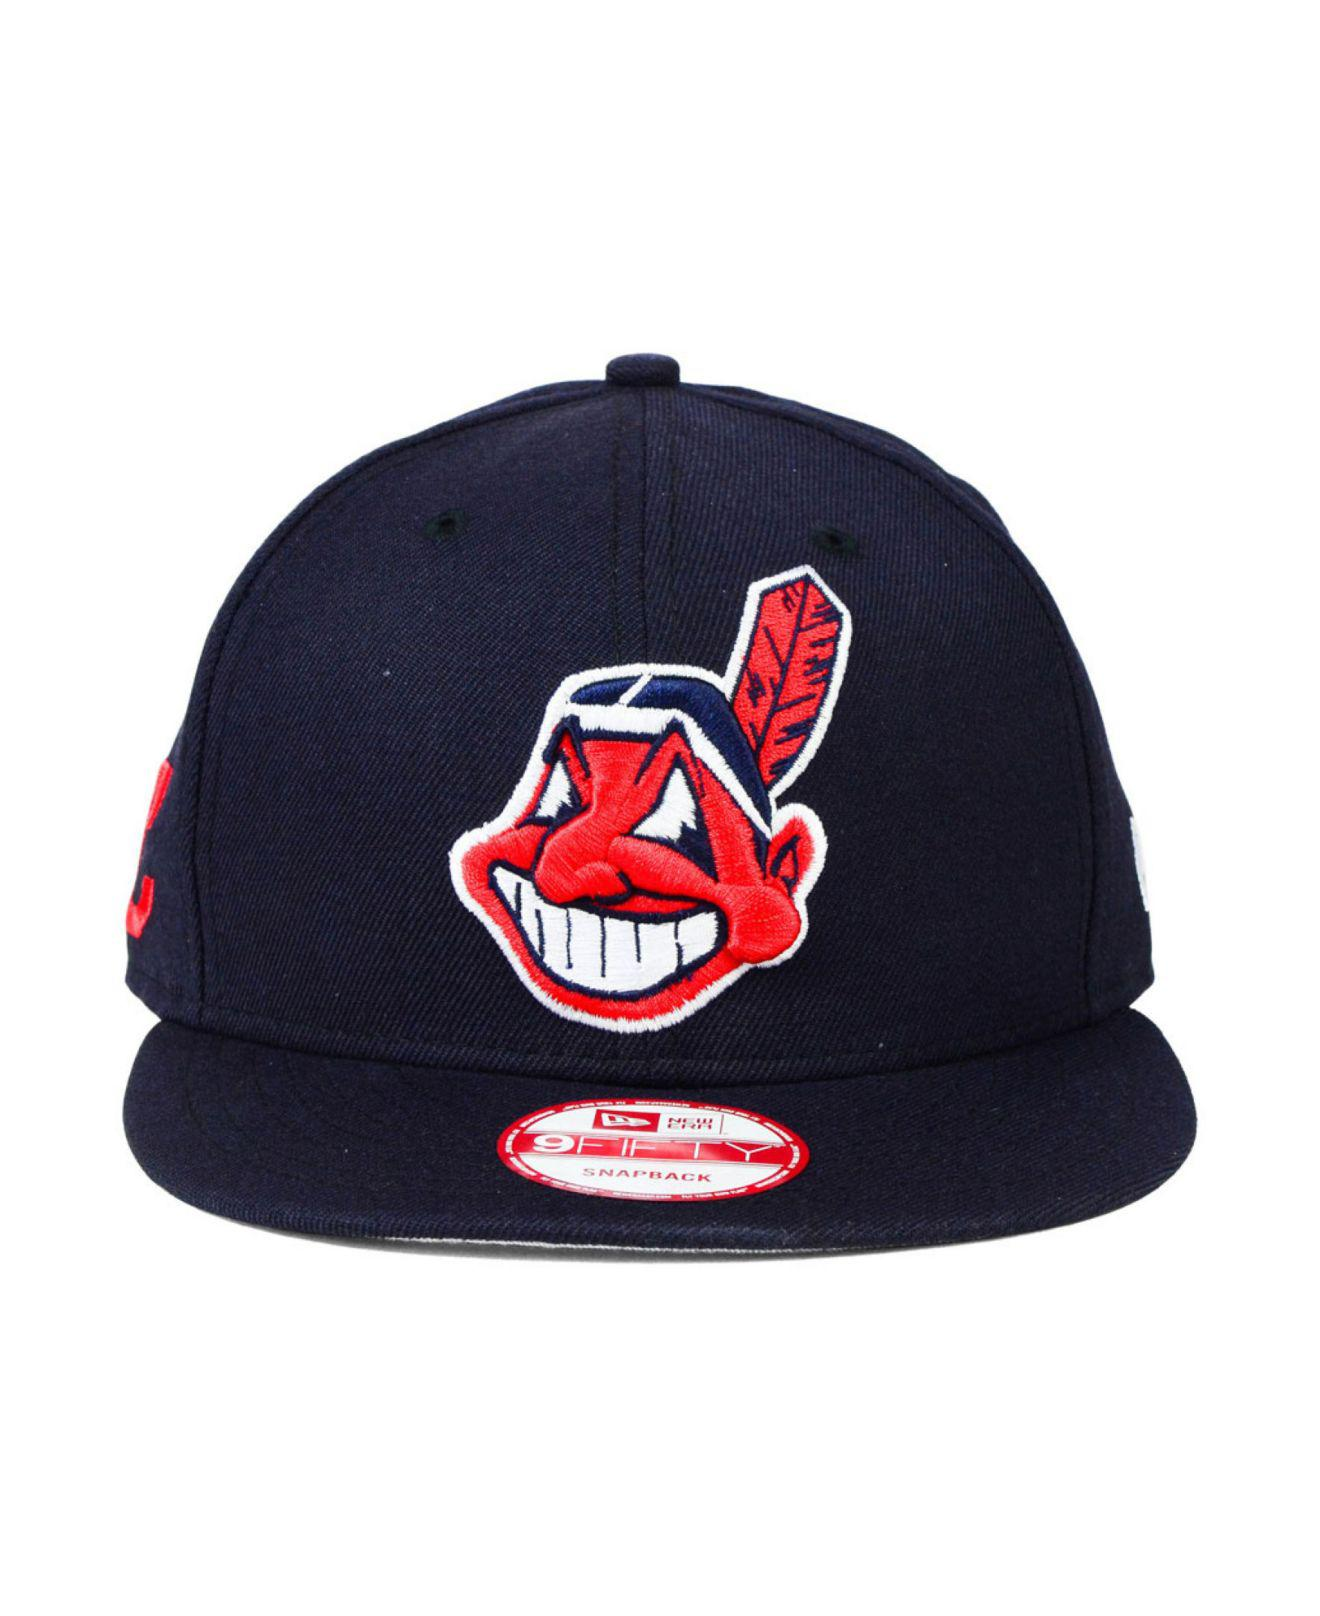 c8ad36dc ... cheap lyst ktz cleveland indians 2 tone link 9fifty snapback cap in  blue for men e8893